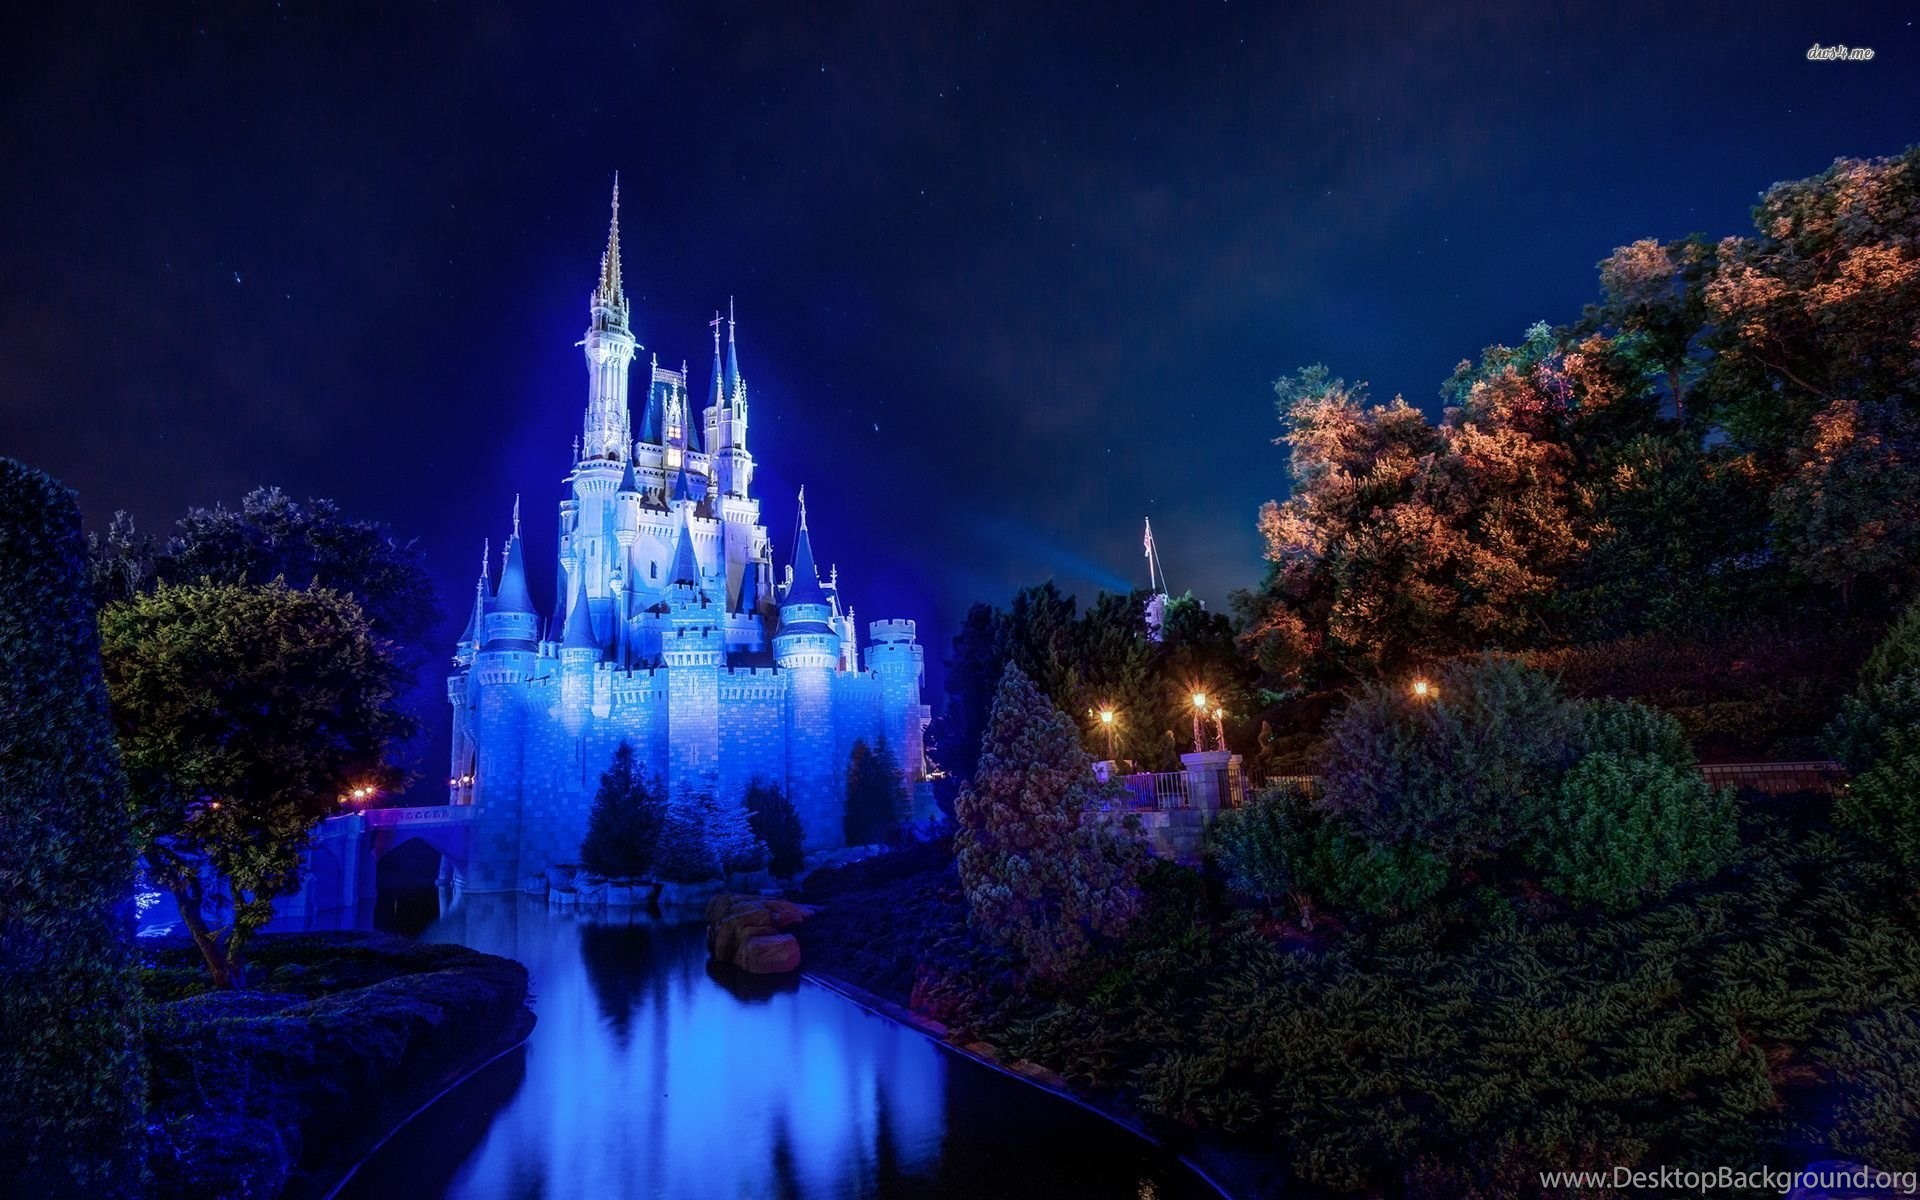 Download Free 50 Disney Wallpapers For Desktop The Quotes Land